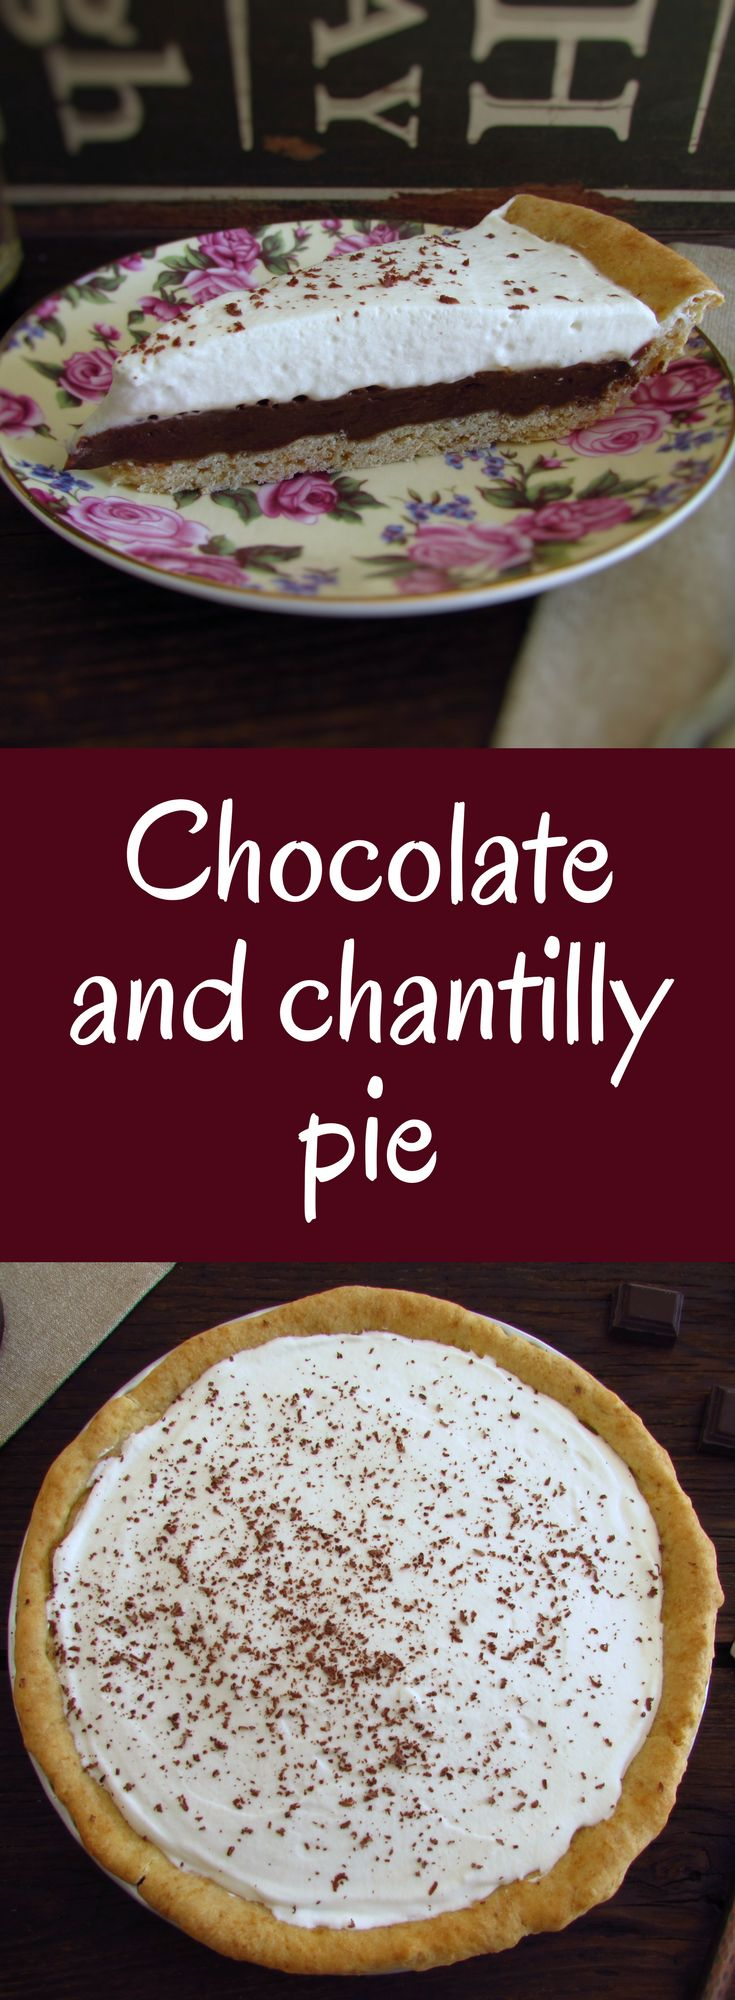 Chocolate and chantilly pie | Food From Portugal. Are you having a special dinner with friends or family and want to prepare a delicious dessert? This chocolate and chantilly pie will surprise your visits! Serve the pie garnished with grated chocolate, bon appetit!!! #recipe #pie #chocolate #chantilly